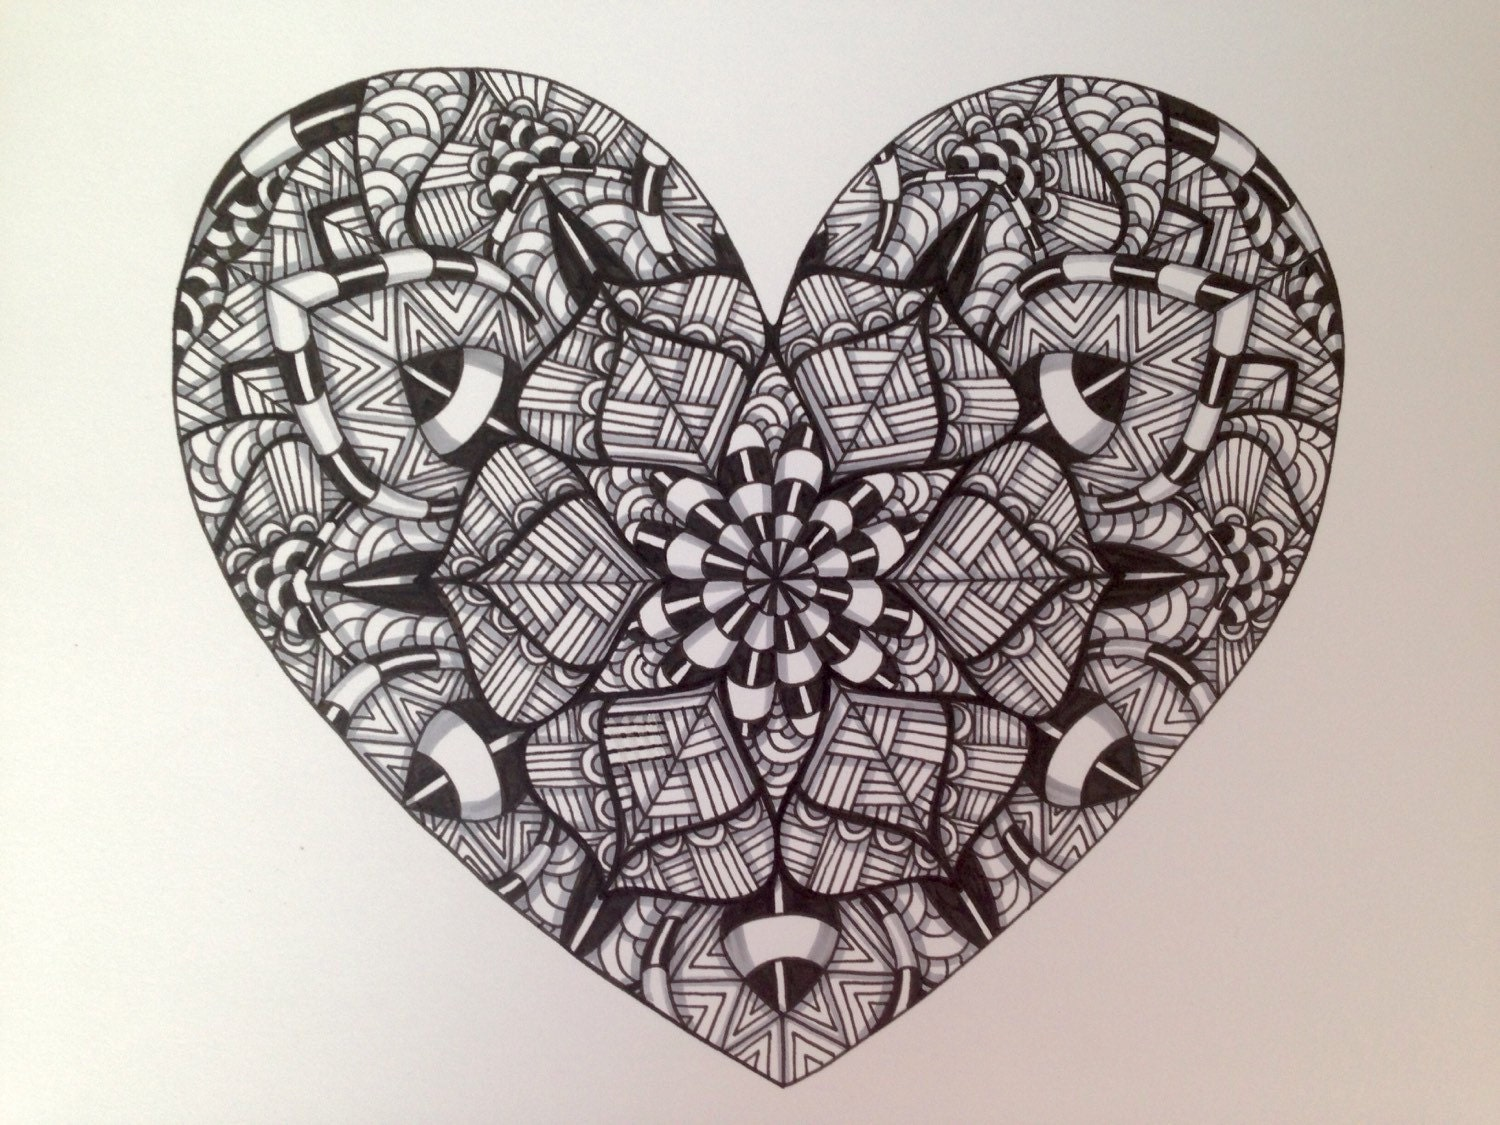 17 Best images about Zentangle on Pinterest | Keith haring ... |Zentangle Heart Graphics